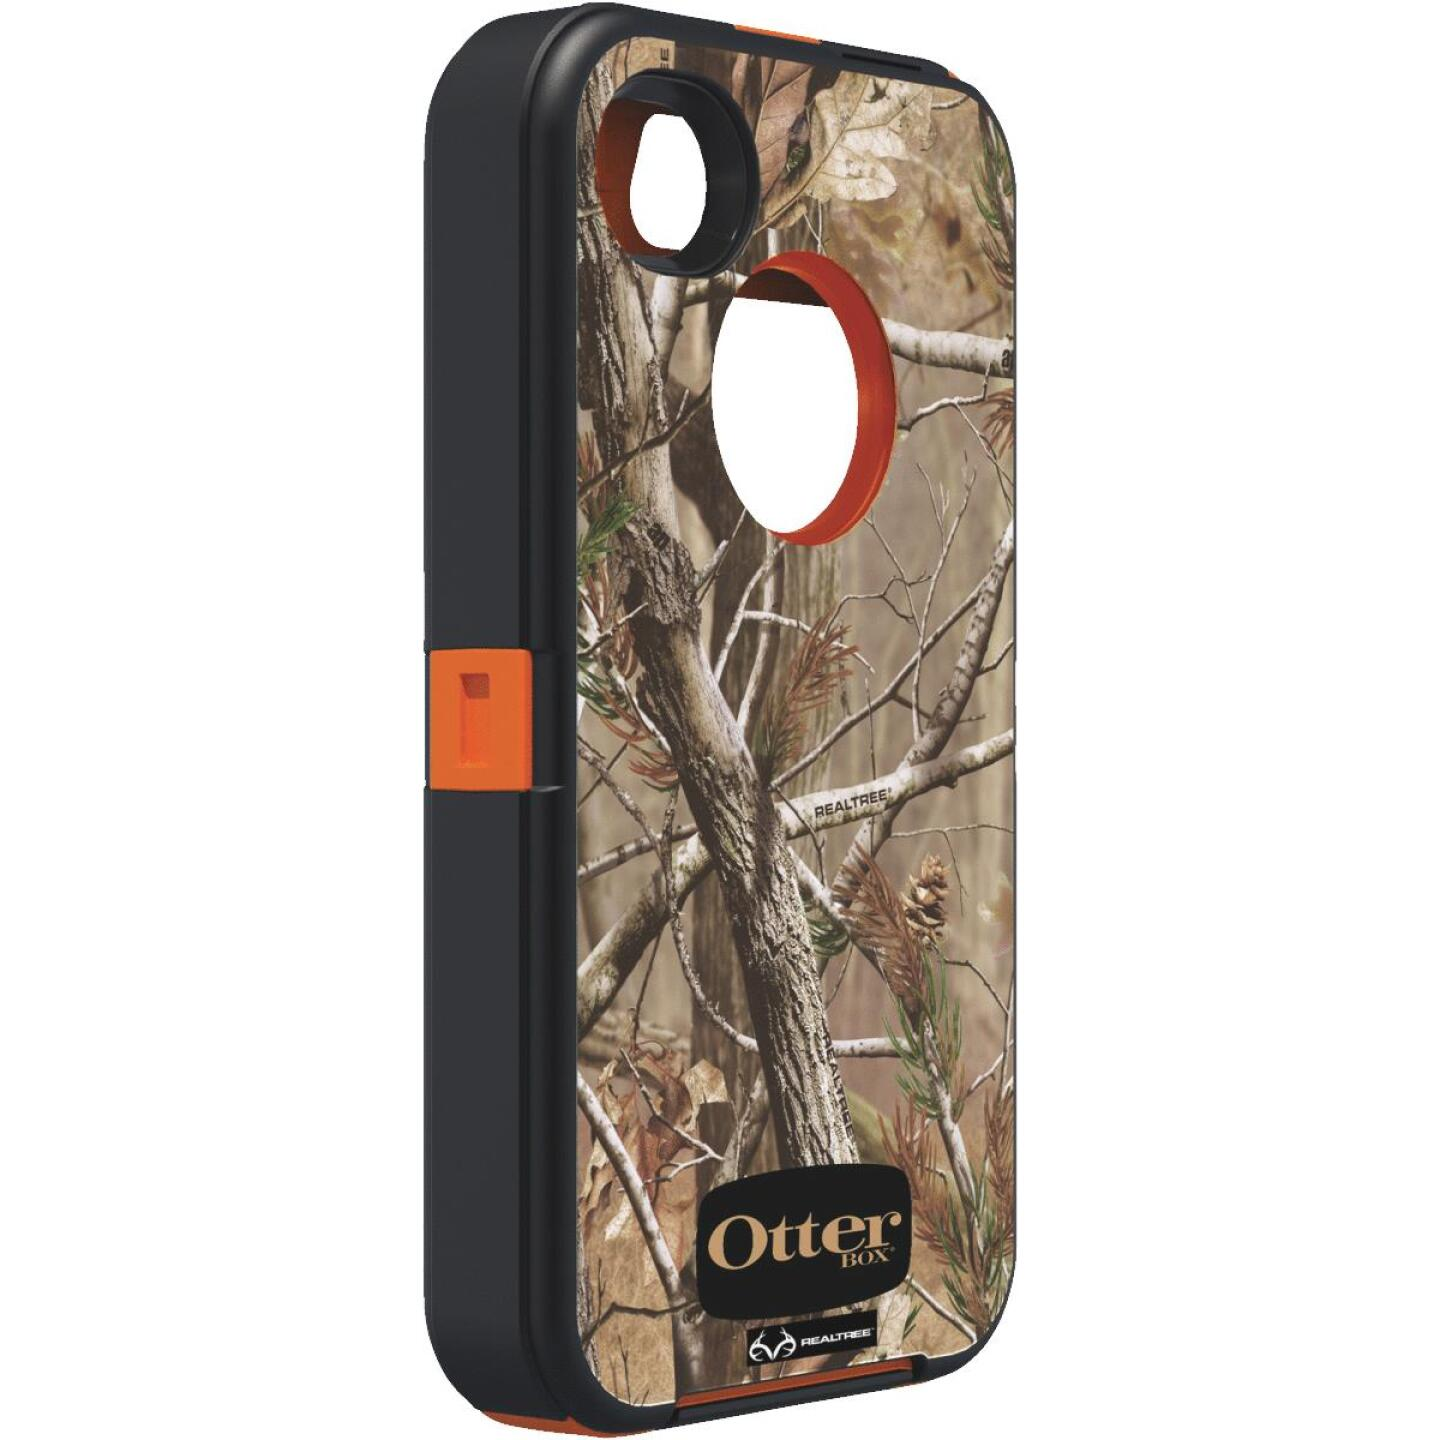 iPhone 4/4S Realtree Camo OtterBox Cell Phone Case Image 1